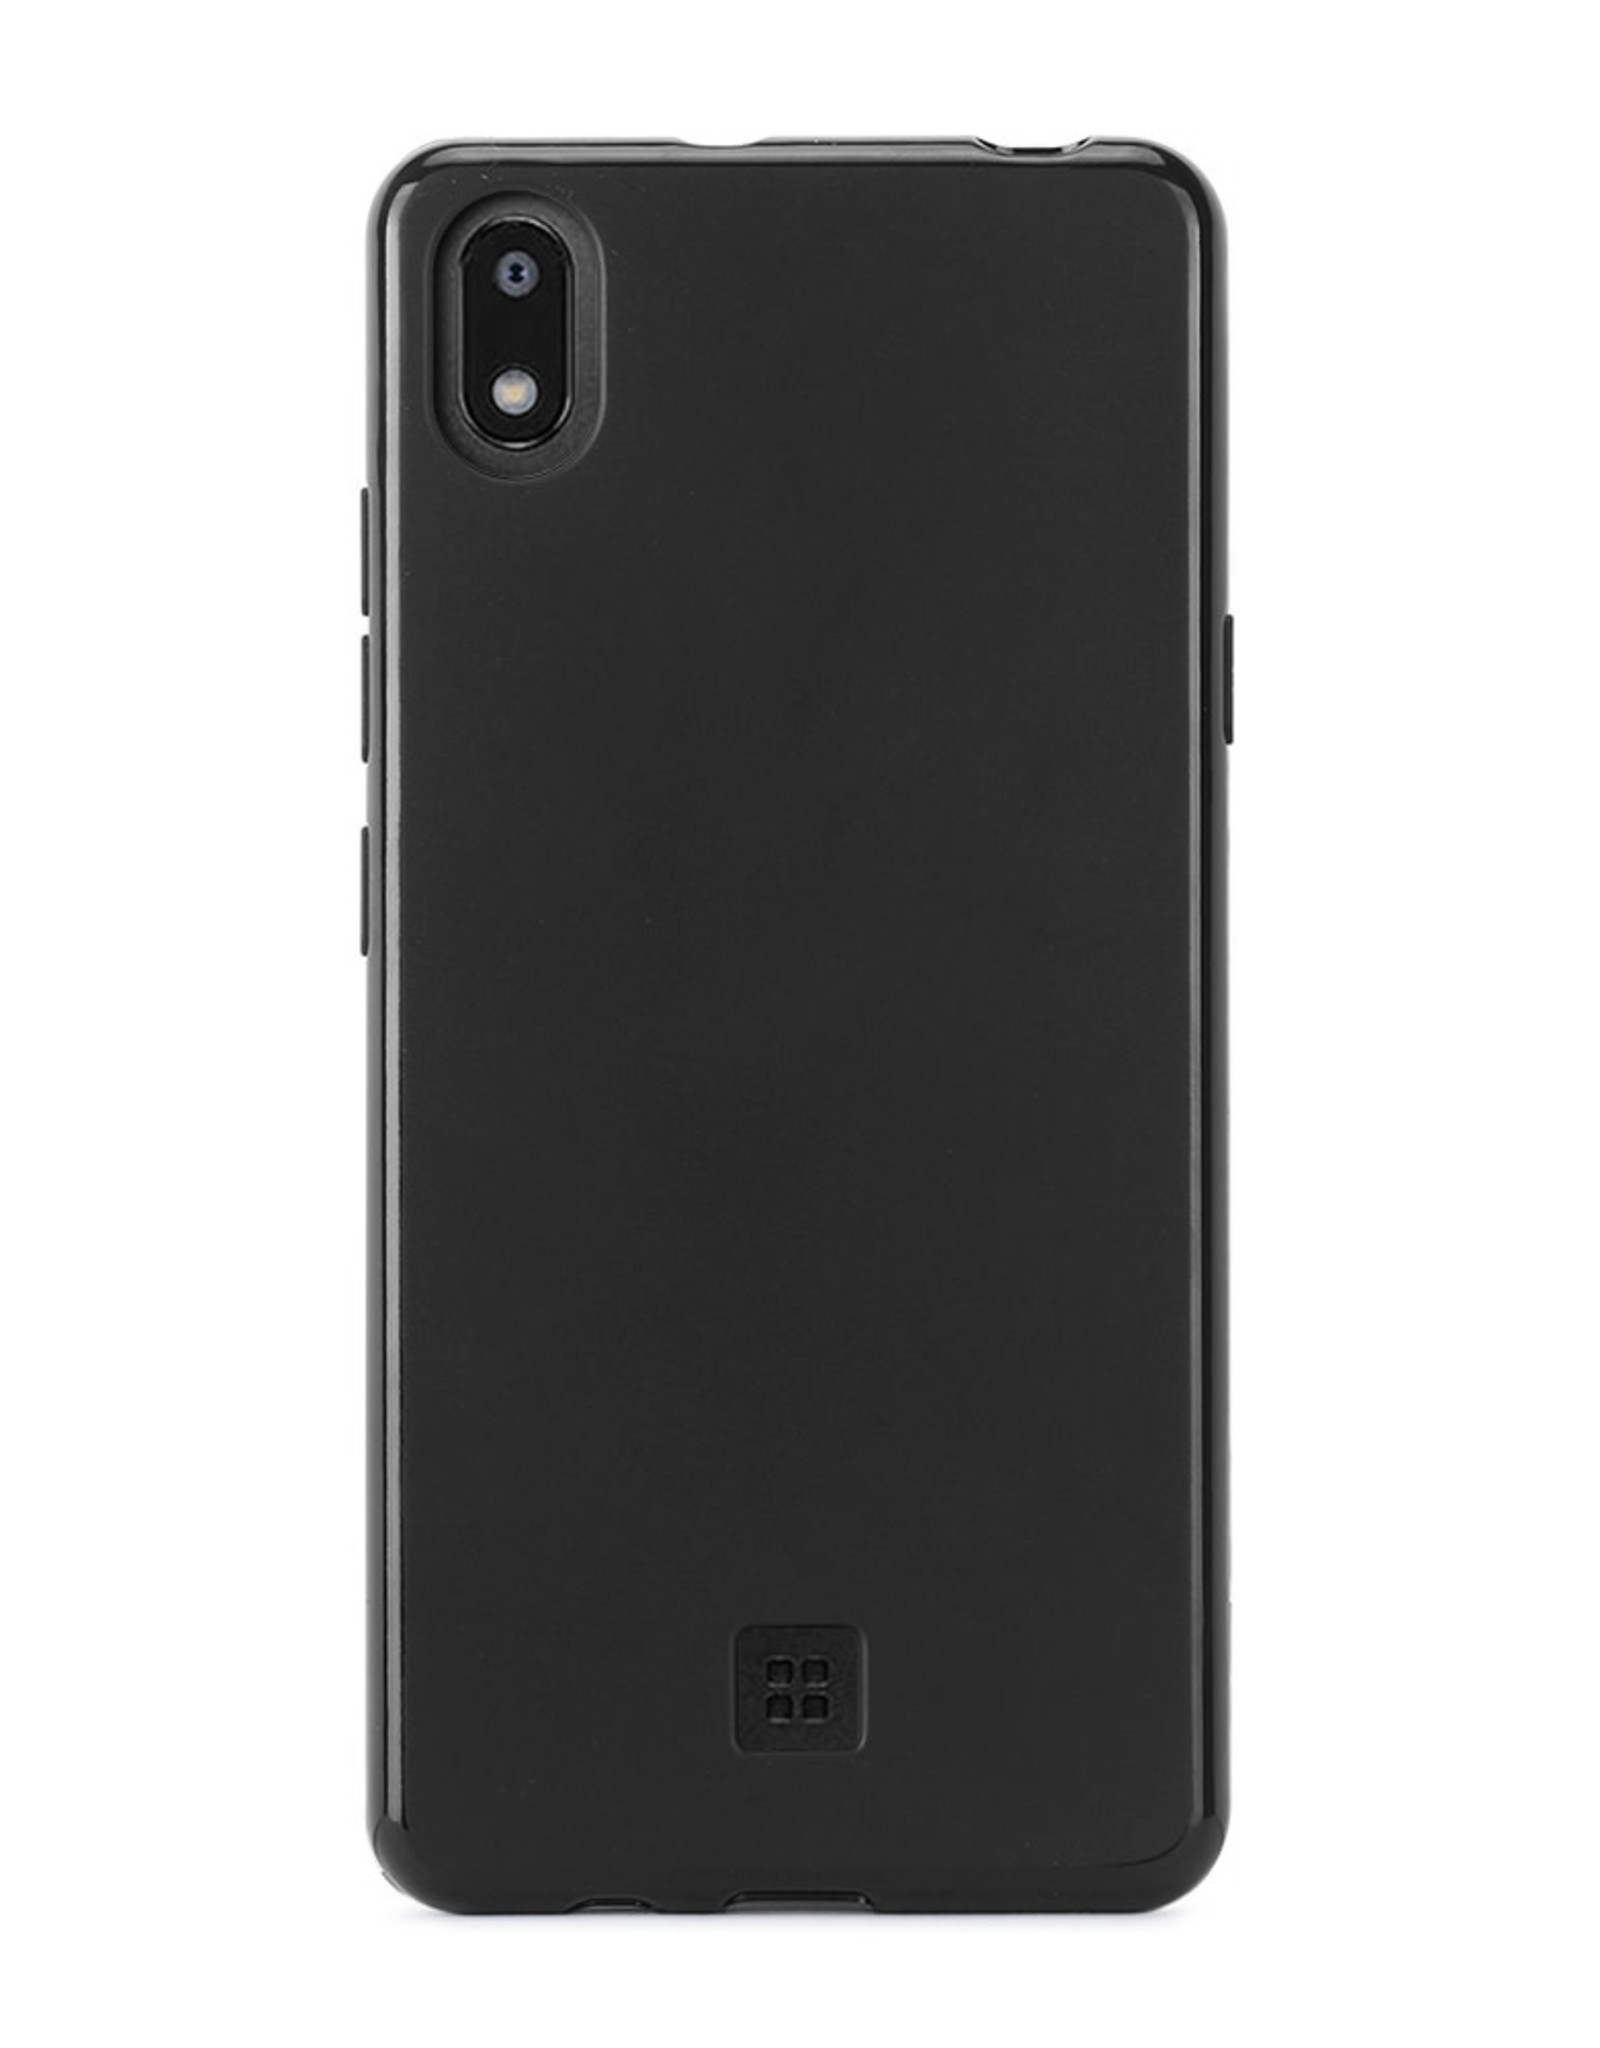 Blu Element Blu Element - Gel Skin Case Black for LG K20 120-2440